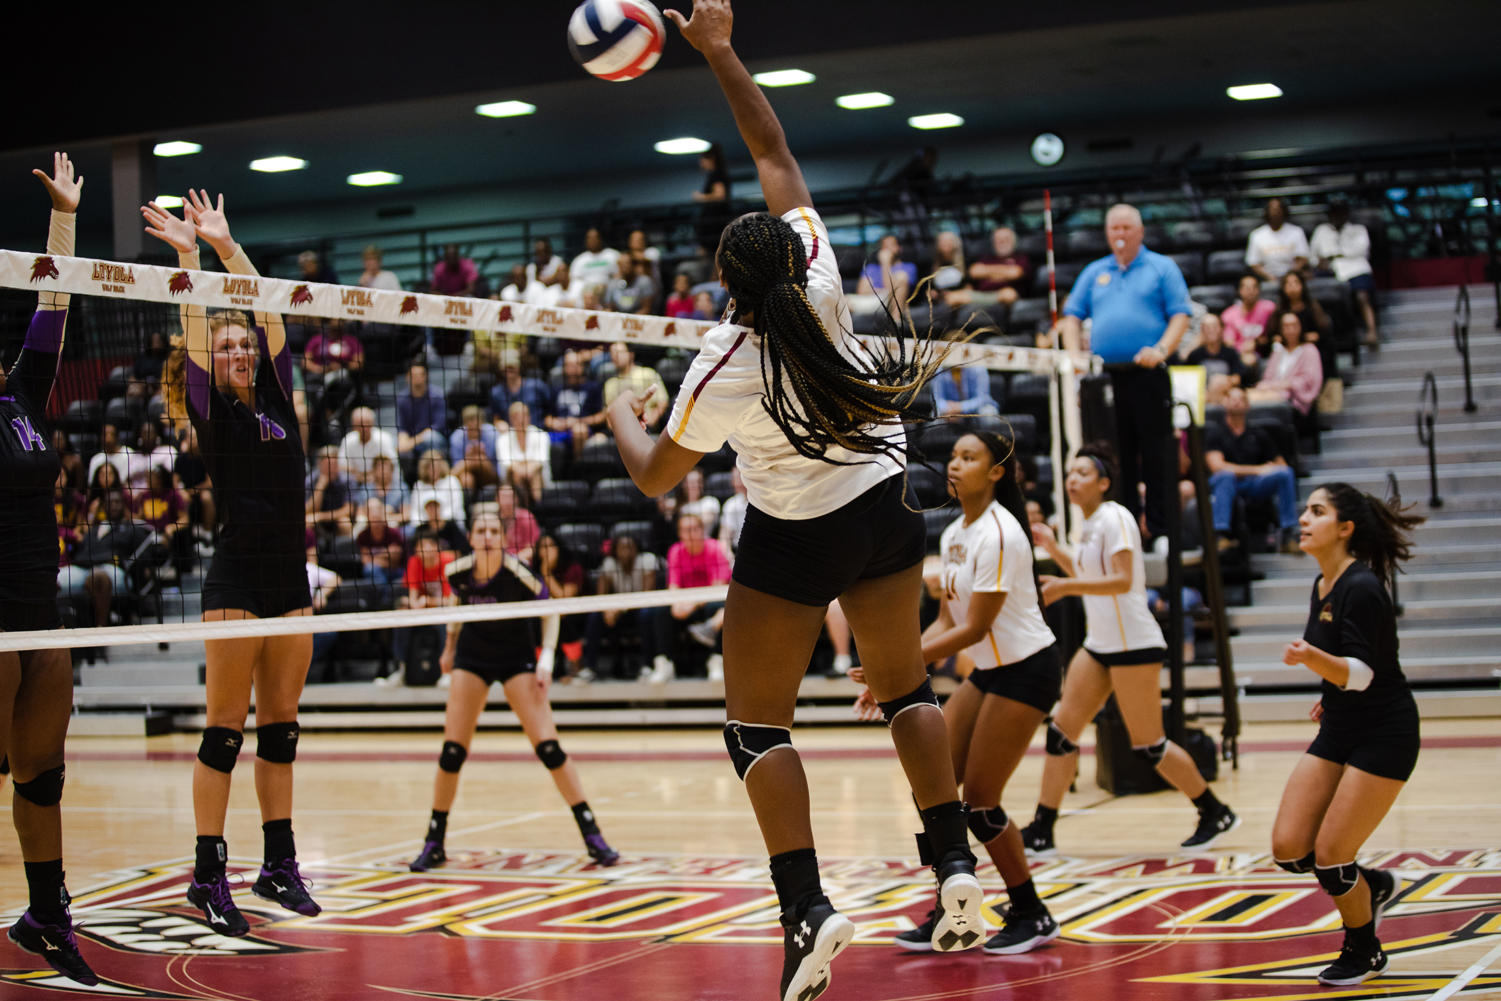 General studies freshman Jordan Bernard goes for a kill in the home opener against Bethel University. Bernard led the team in kills against Faulkner University with 13 kills. Photo credit: Julia Santos